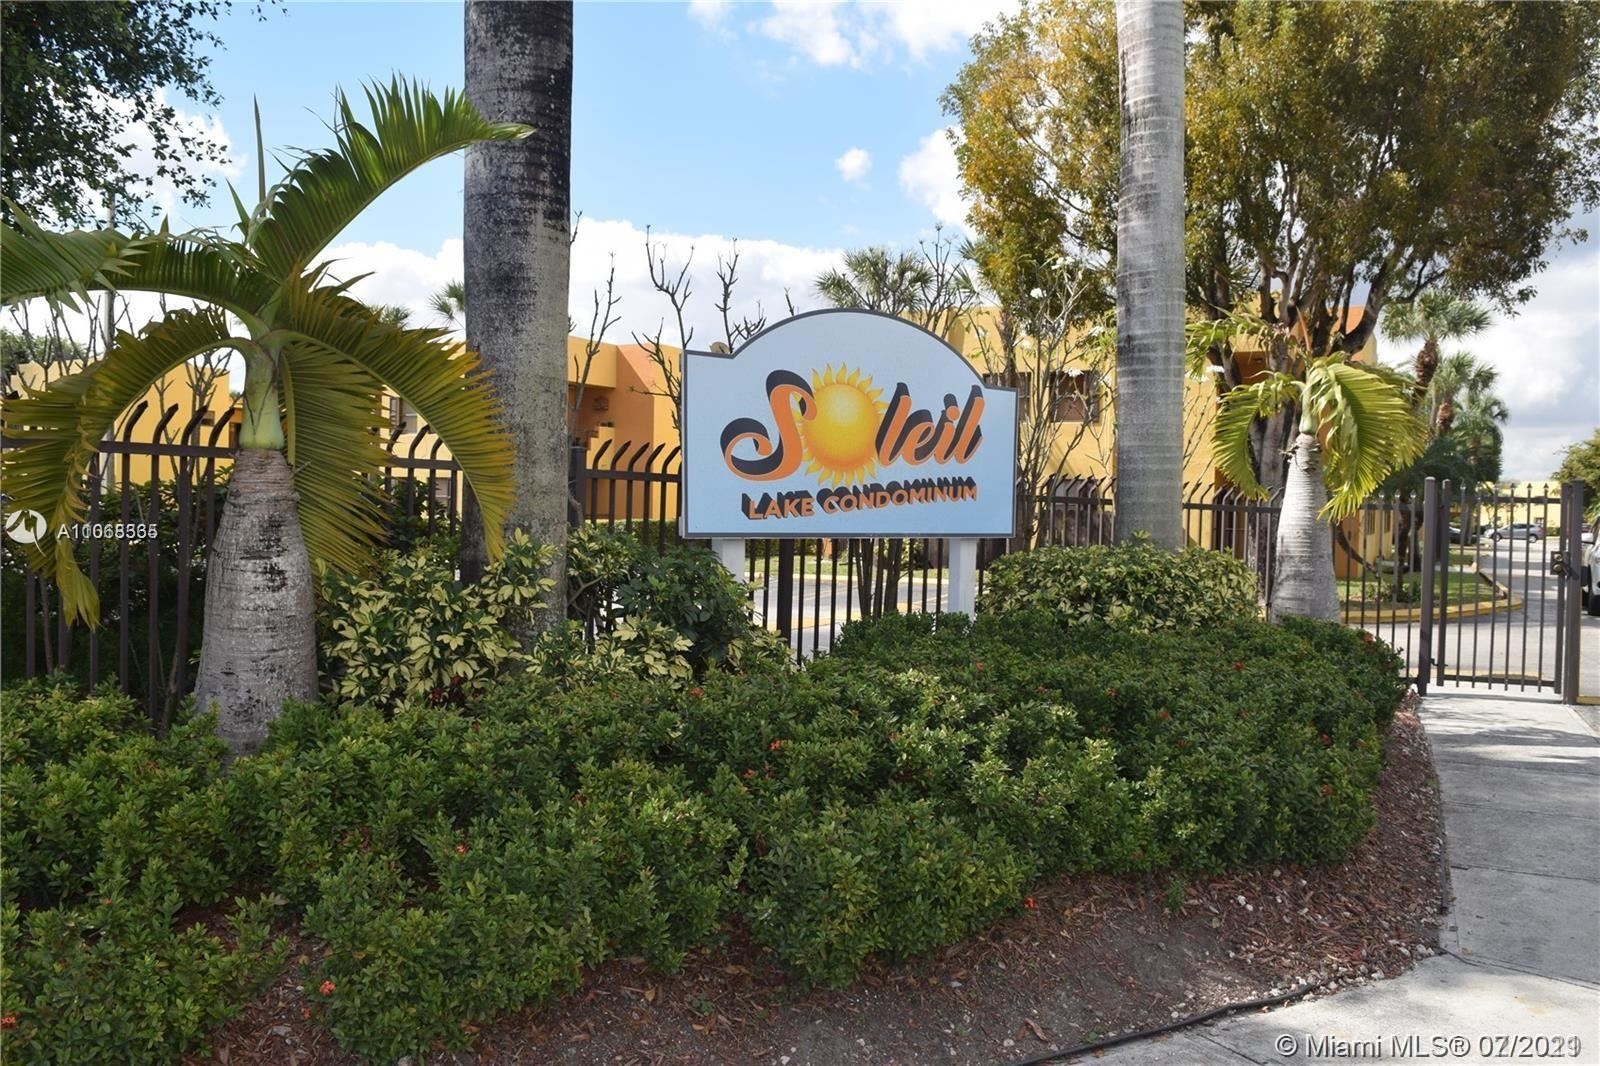 630 NW 114th Ave #103, Sweetwater, FL 33172 - #: A11068335